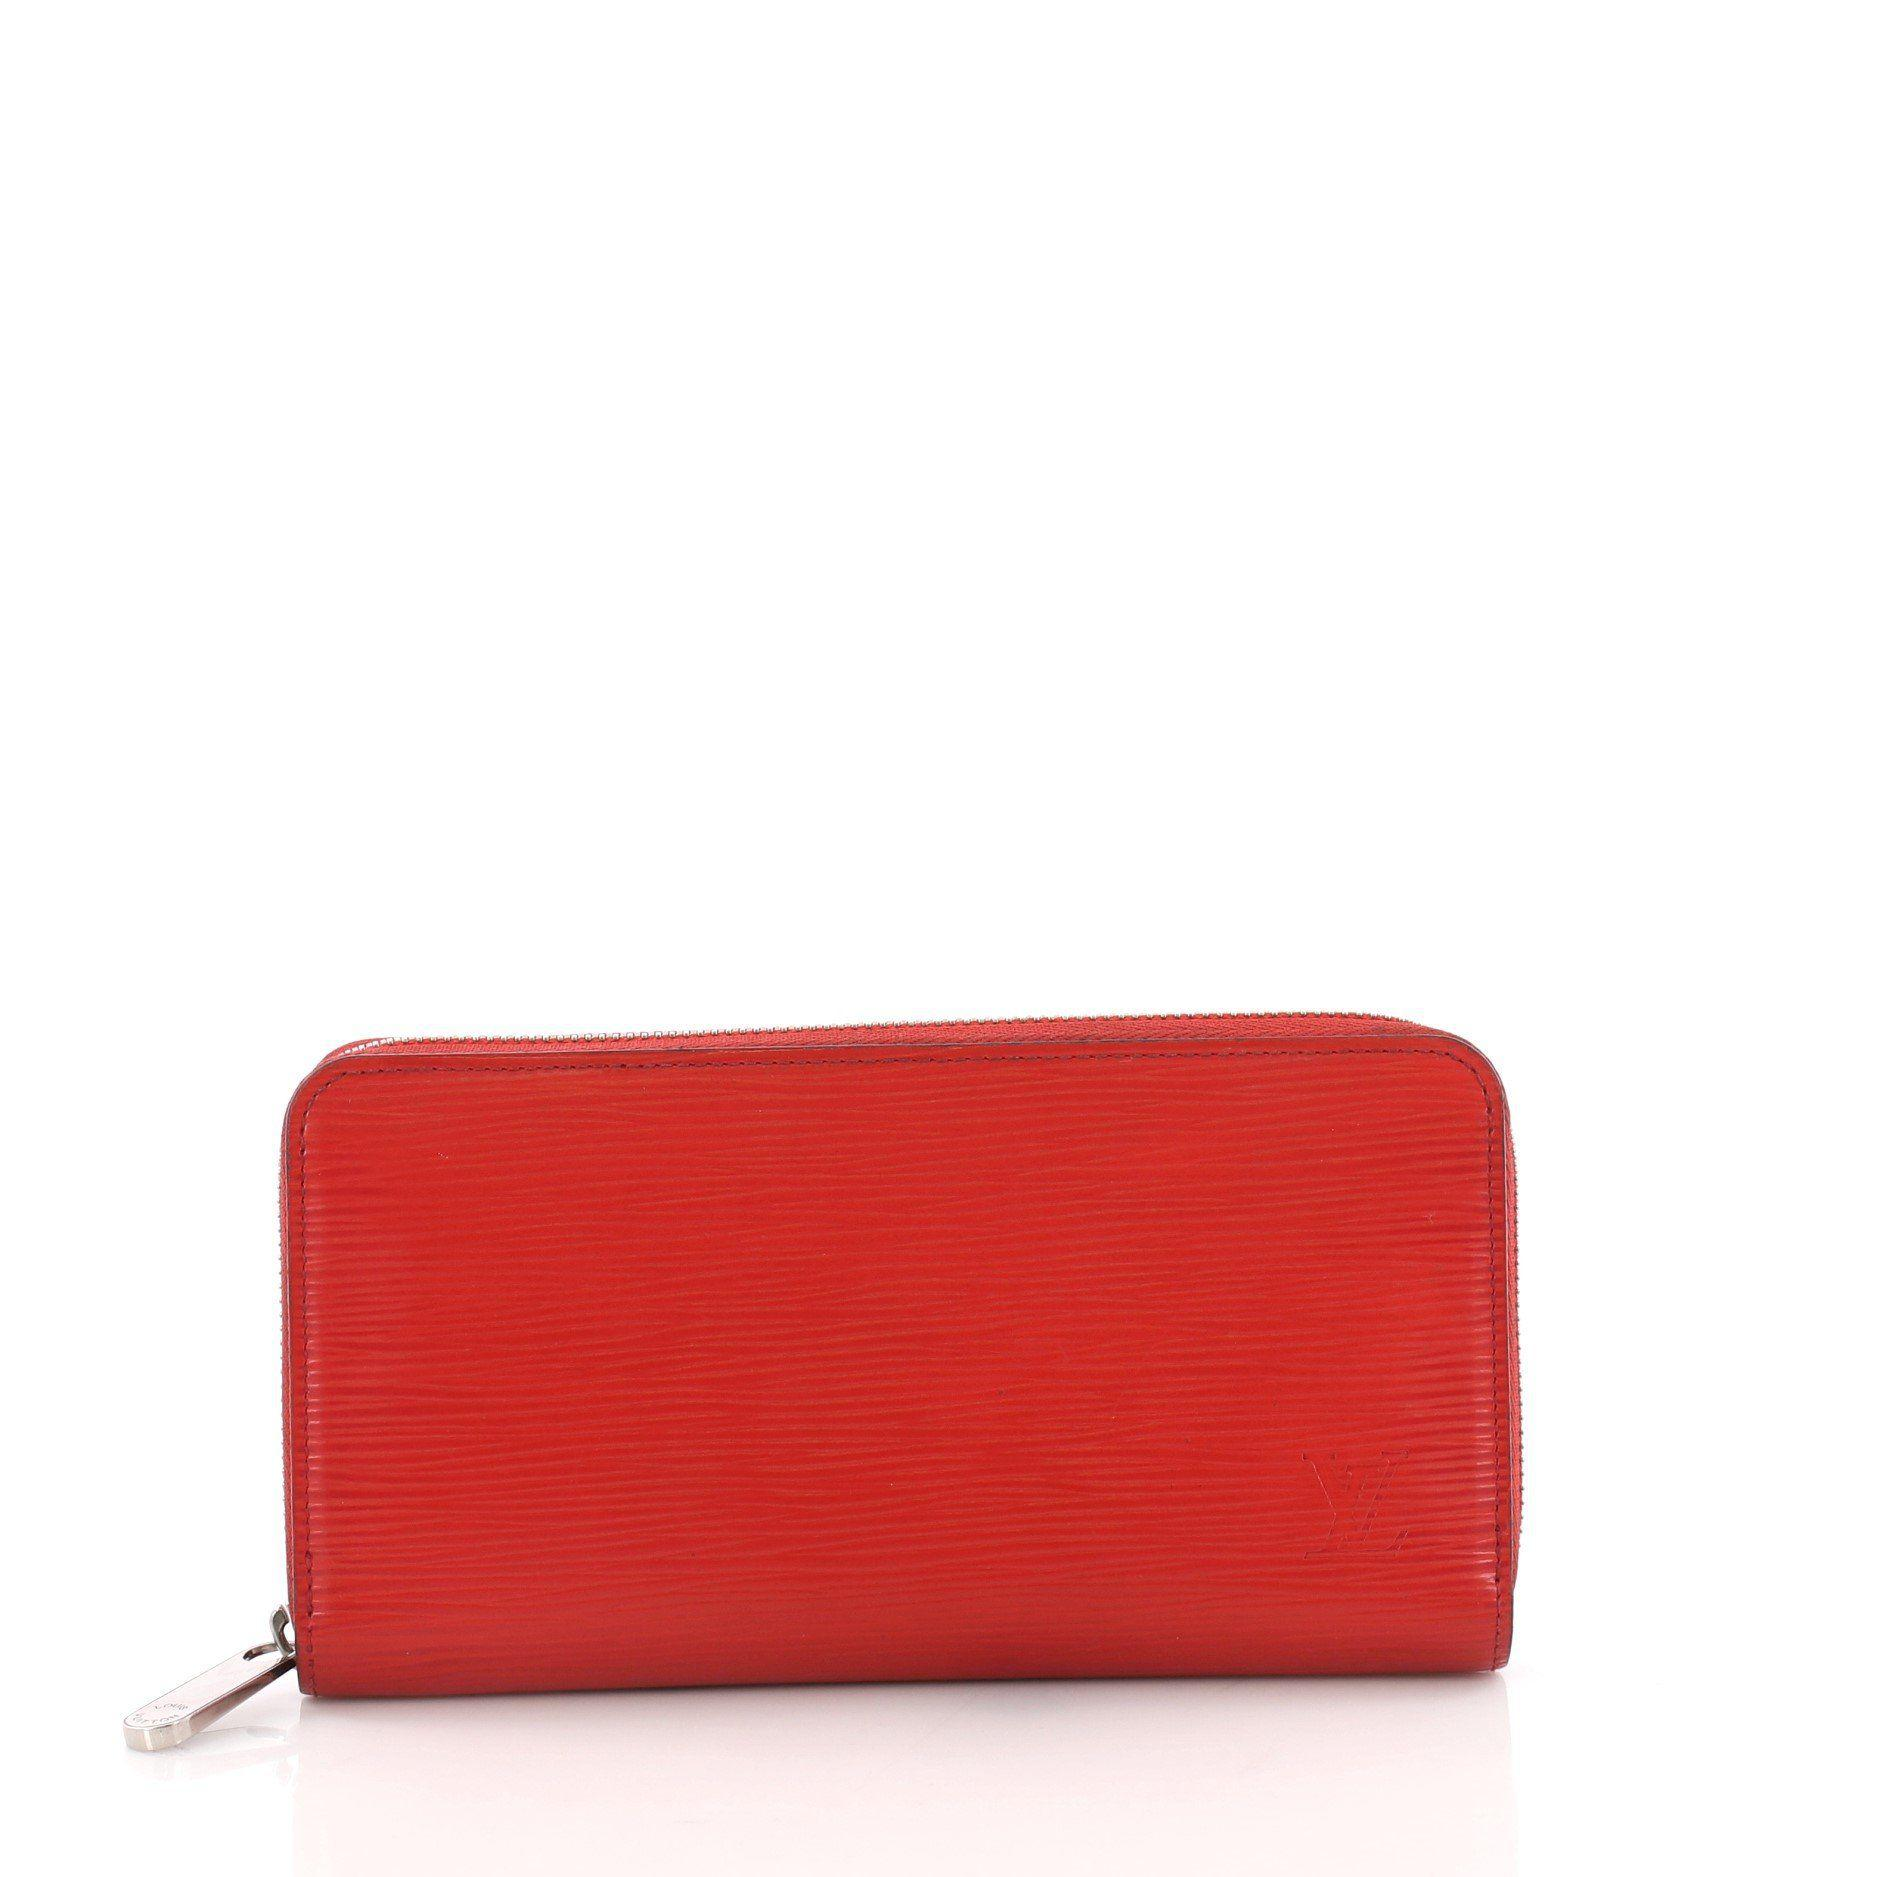 Lyst - Louis Vuitton Pre Owned Zippy Wallet Epi Leather in Red 52fec2e5a63